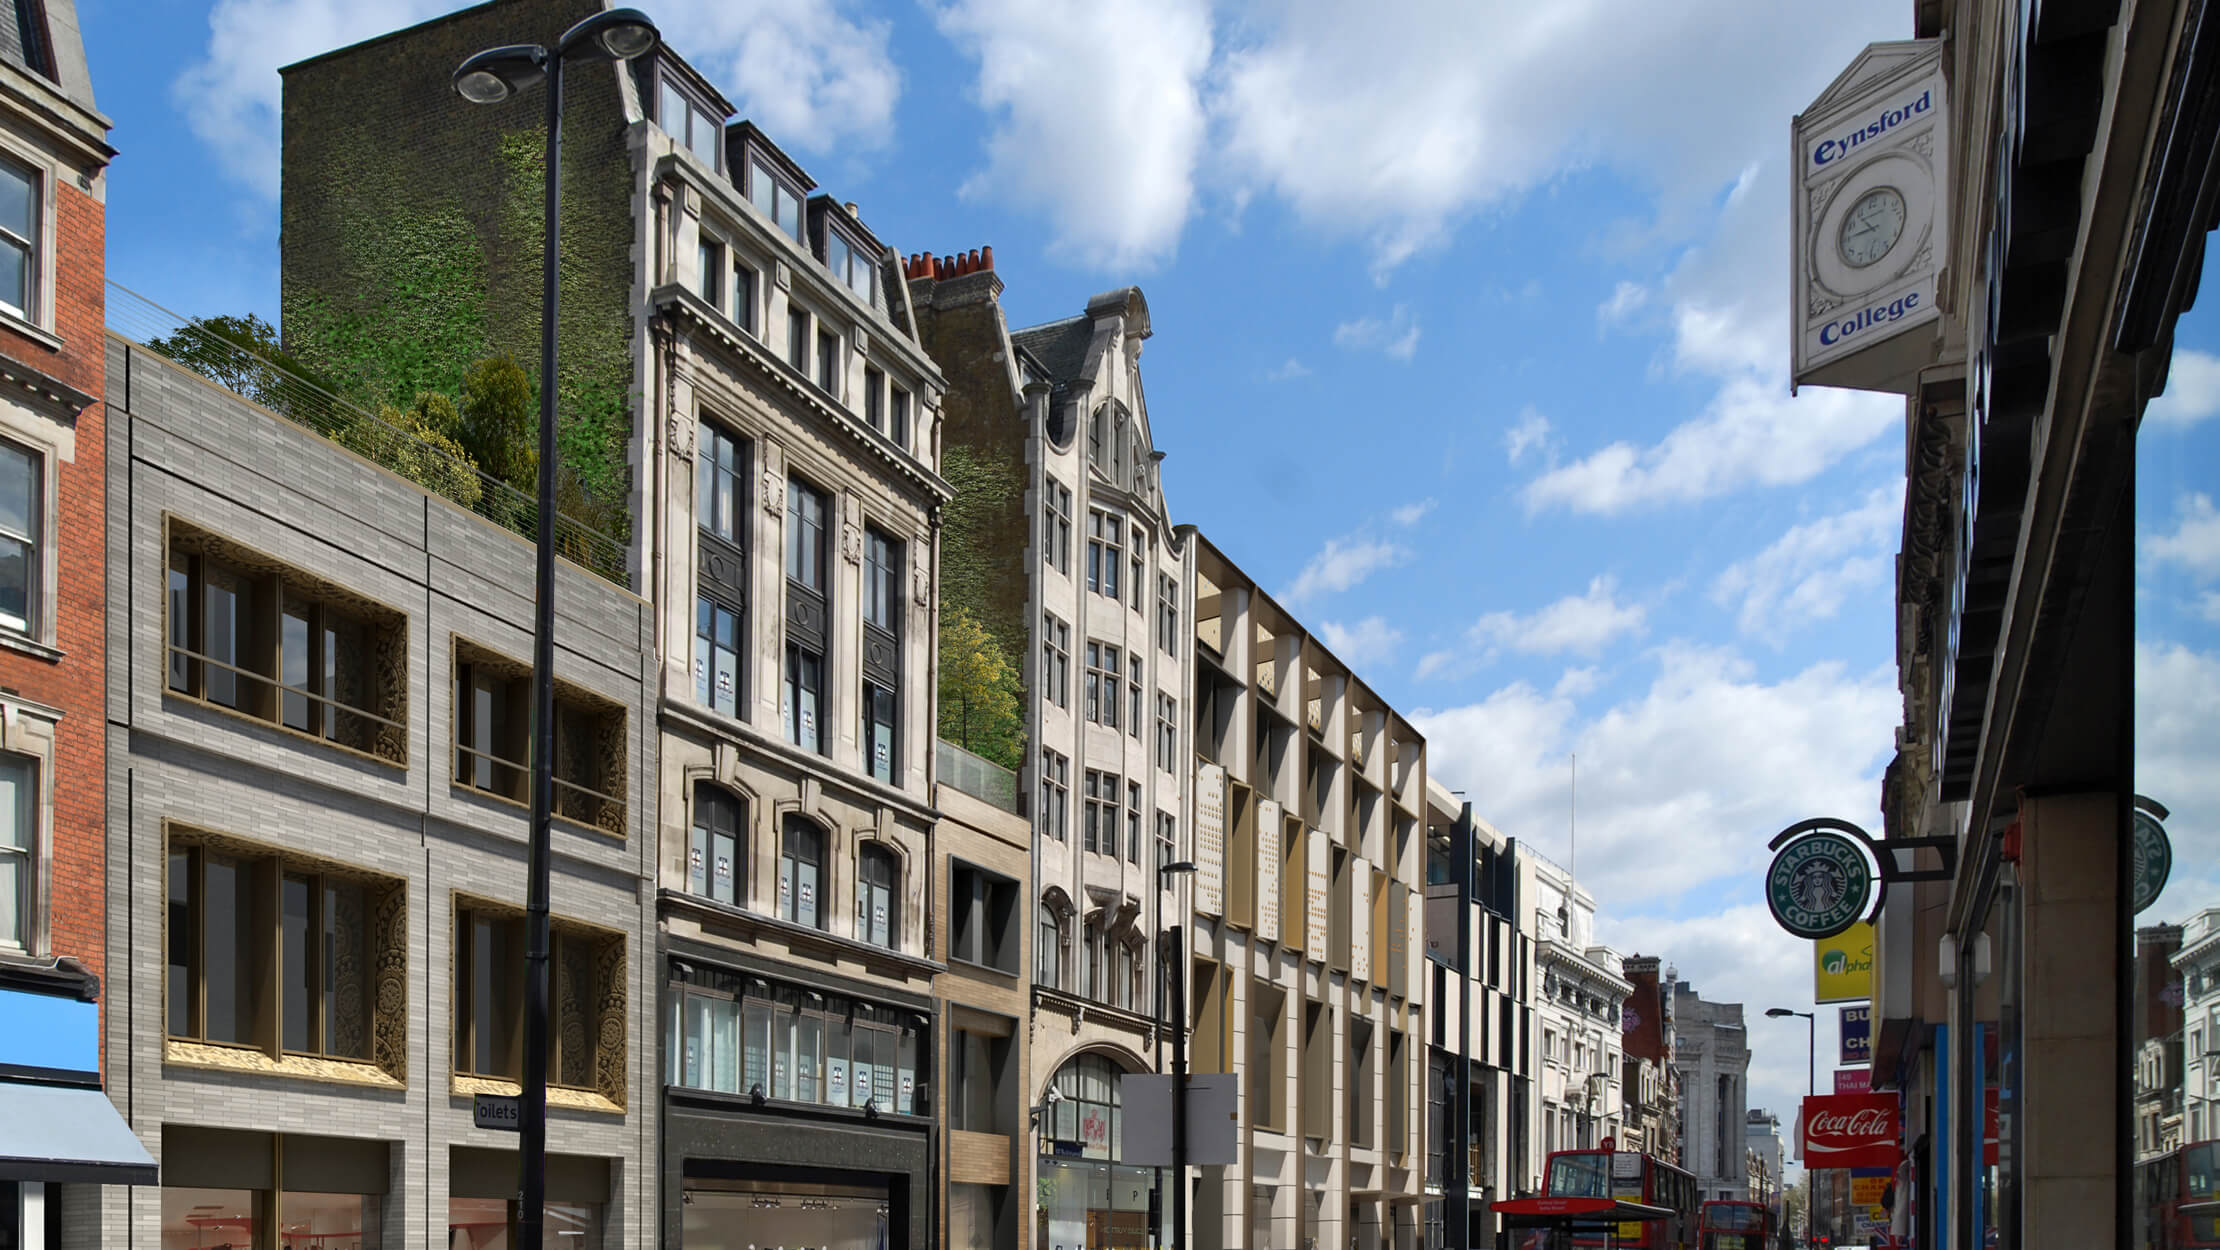 Hanway Gardens exterior, computer generated image intended for illustrative purposes only, ©Galliard Homes.